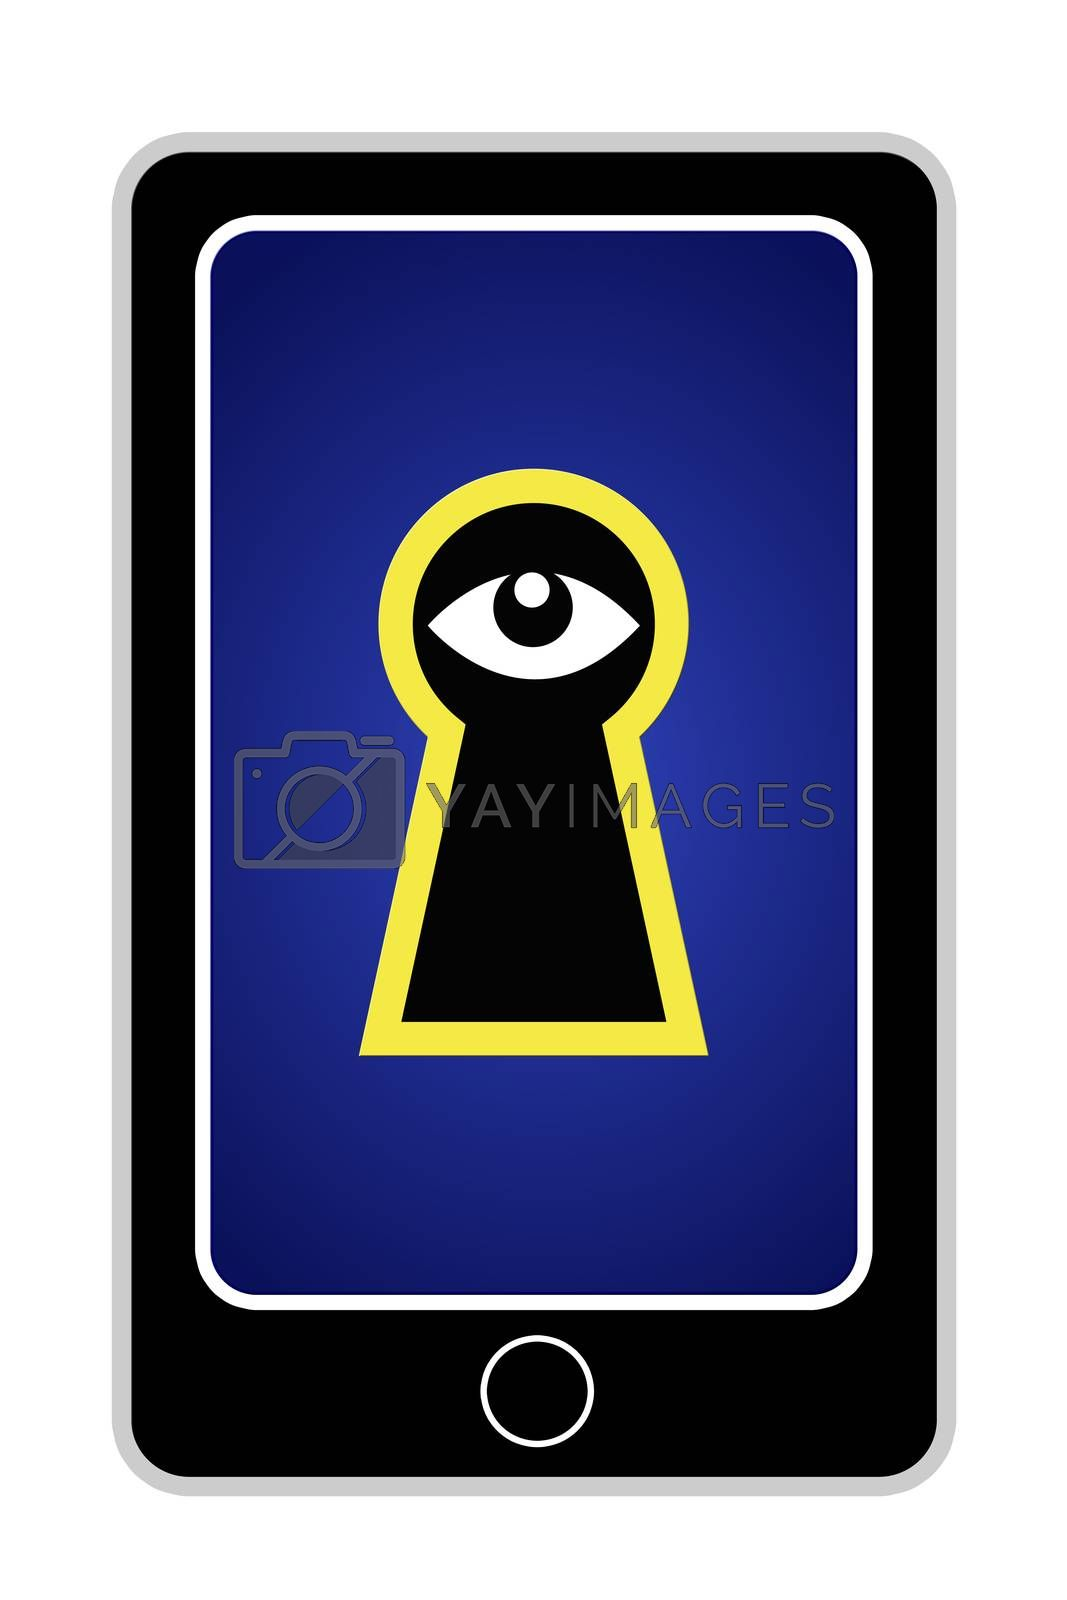 Cell phones can turn into security threat concerning personal data and privacy